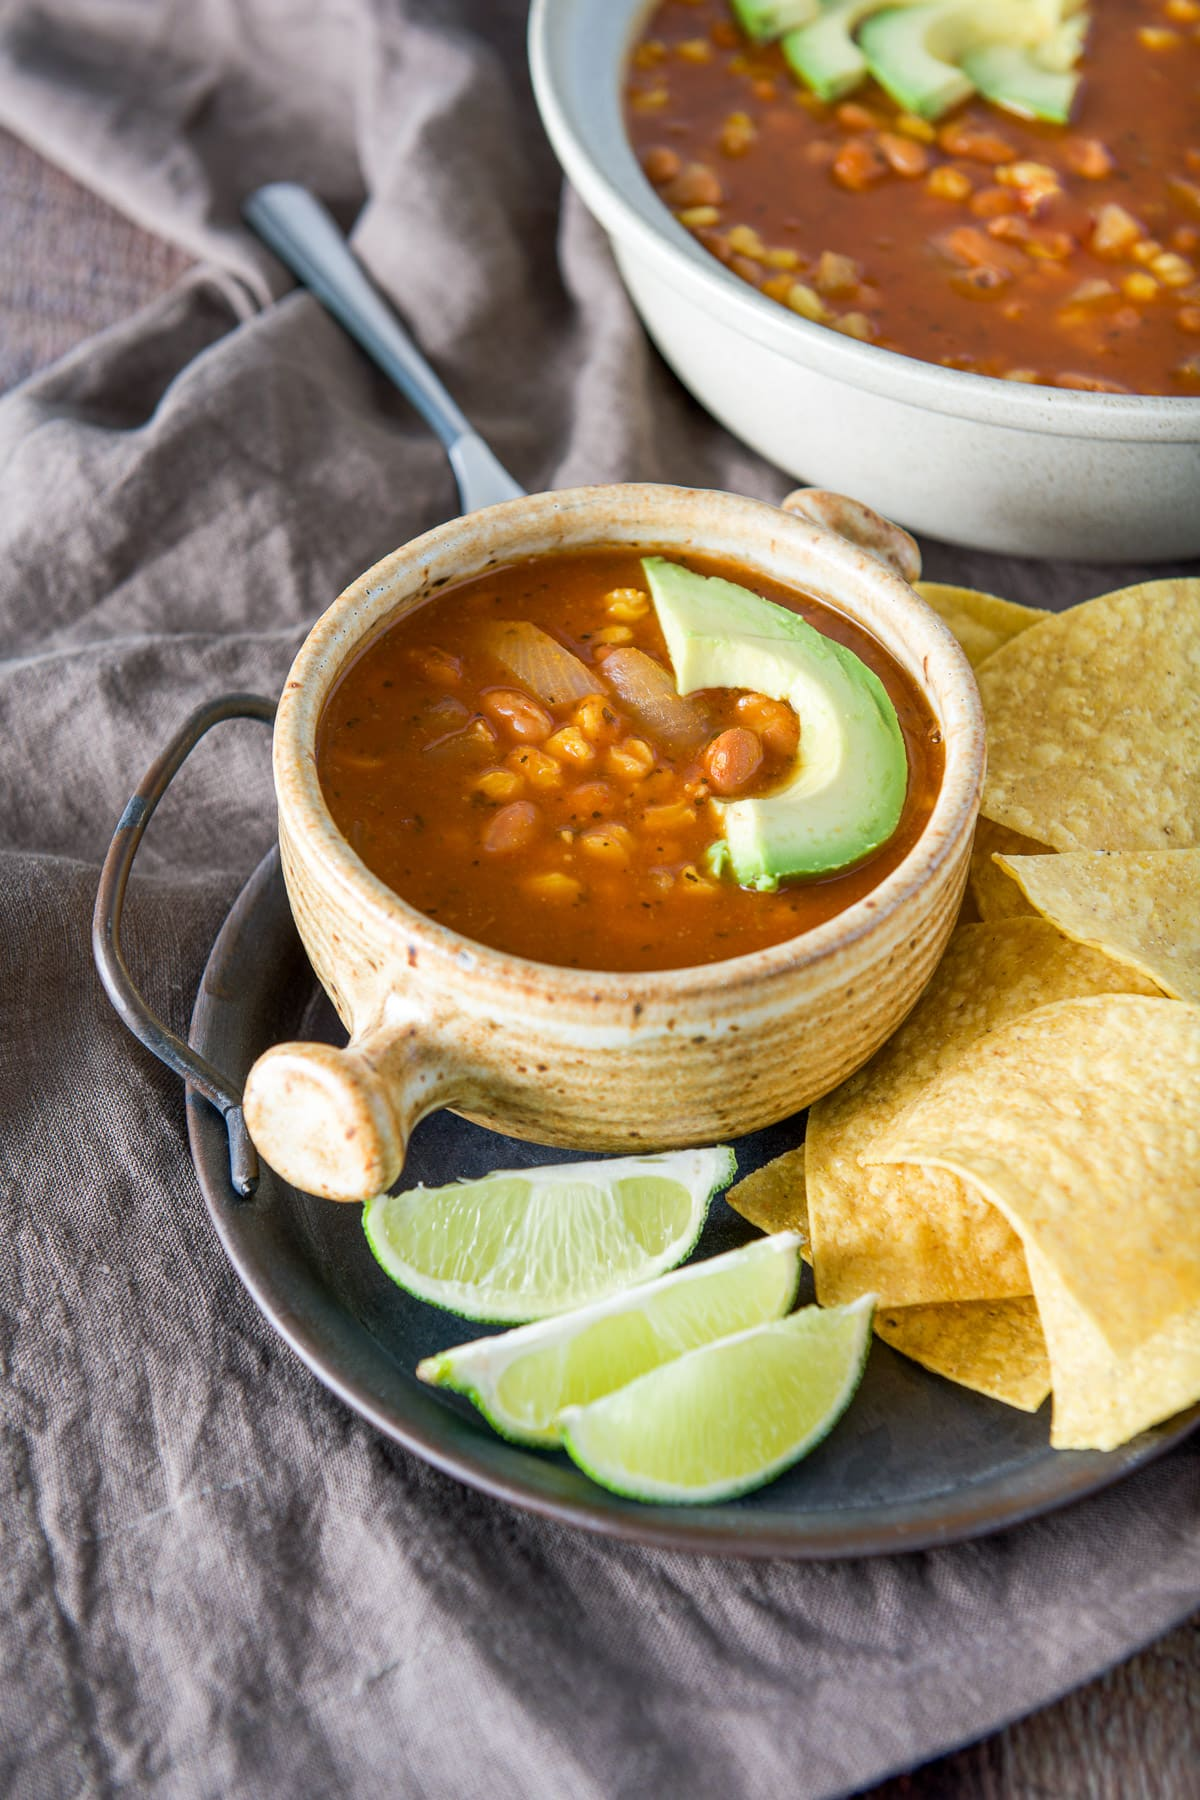 A tray with chips, lime wedges and a crock of soup with an avocado slice on top